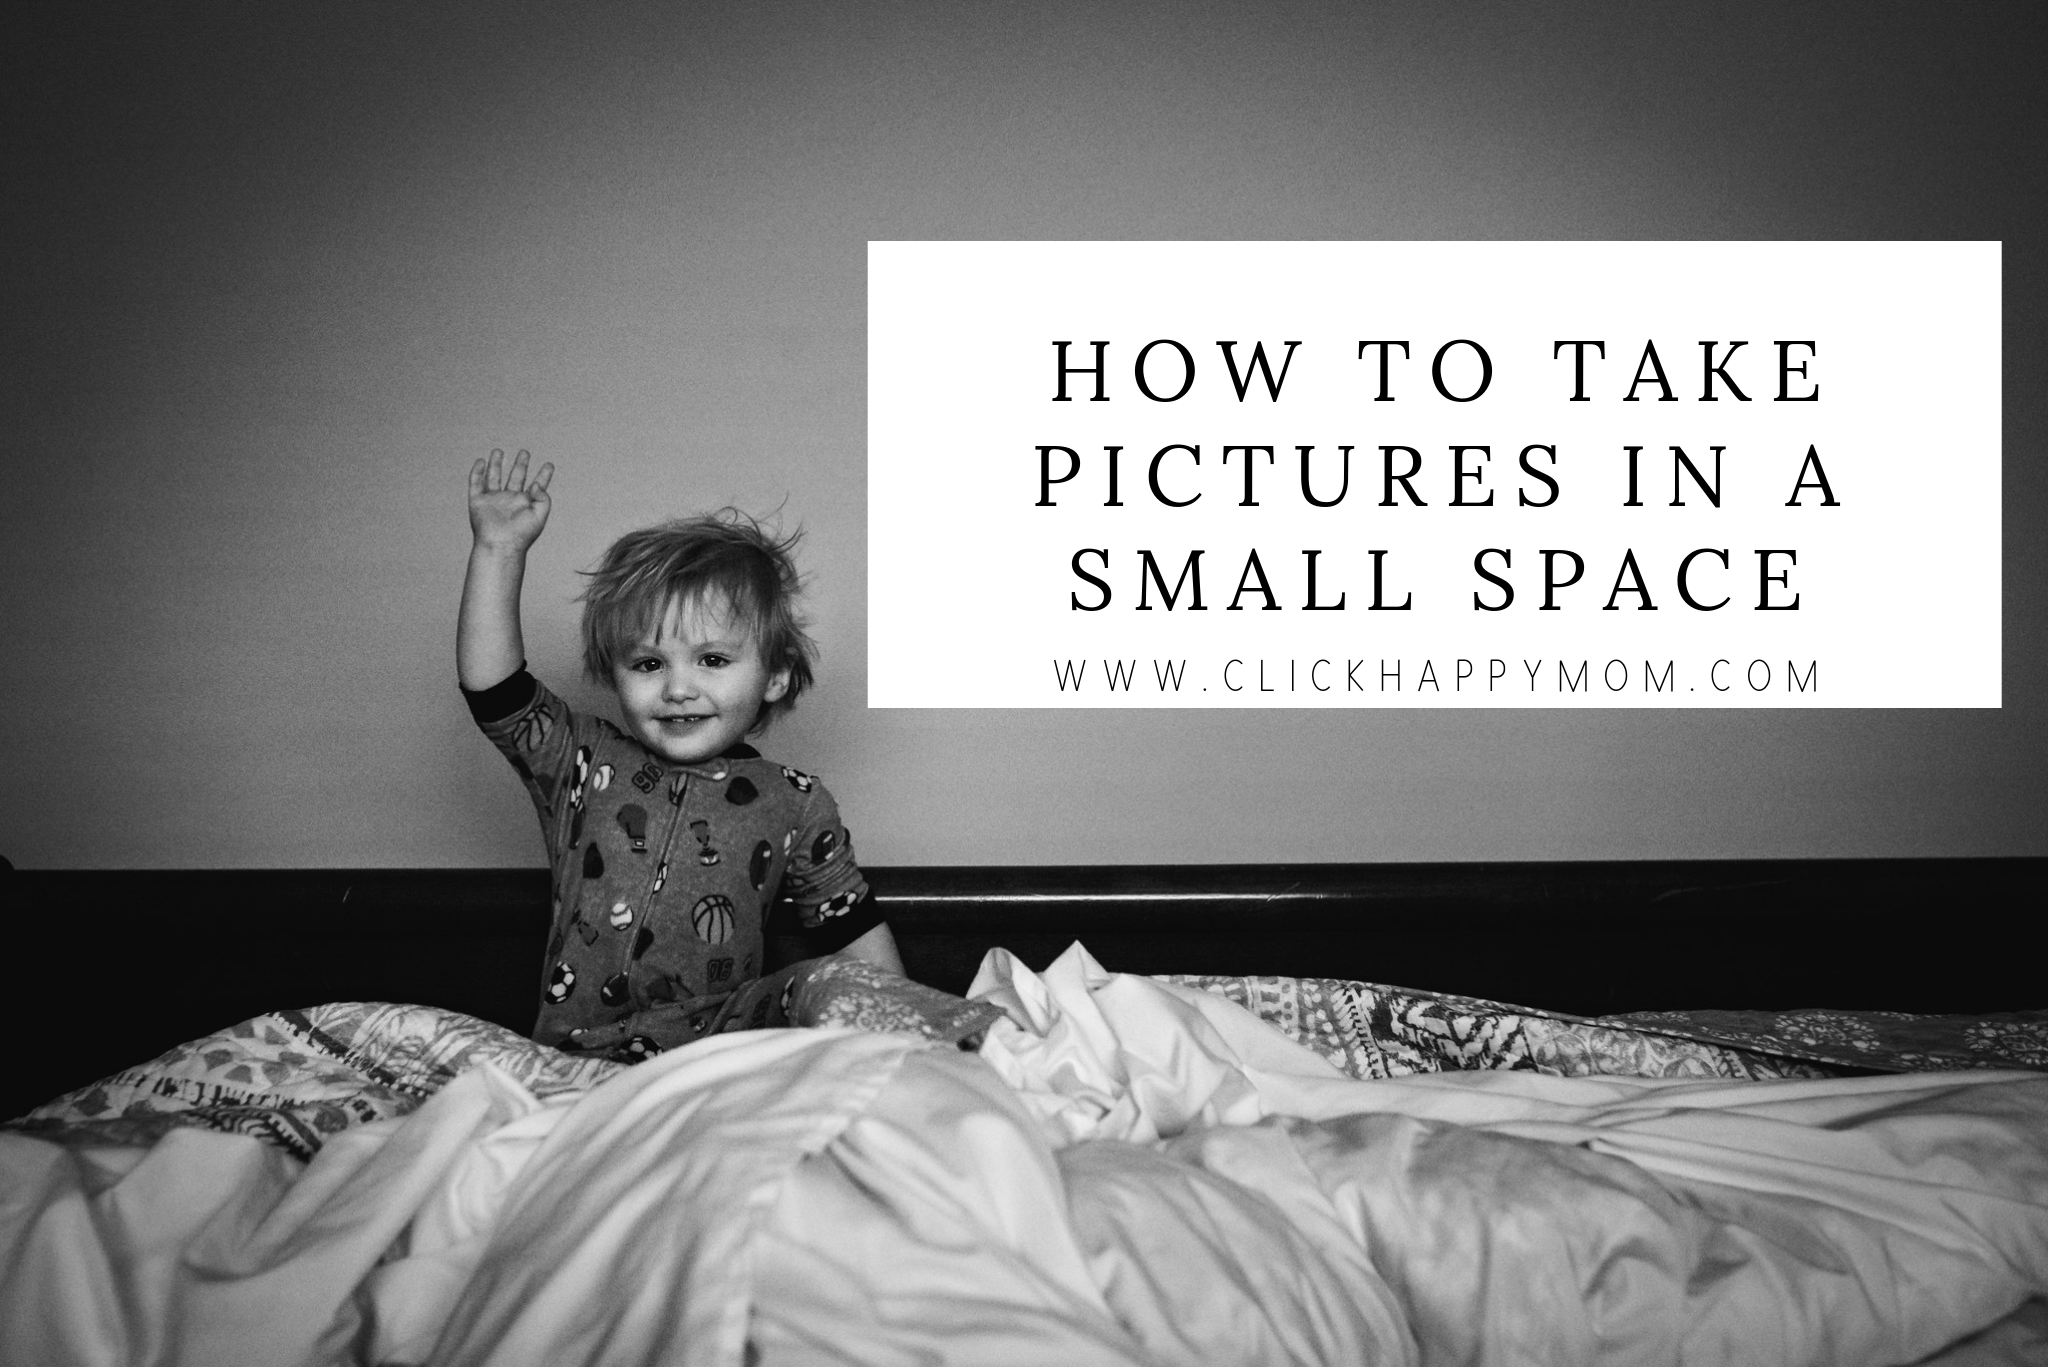 How to Take Pictures in a Small Space